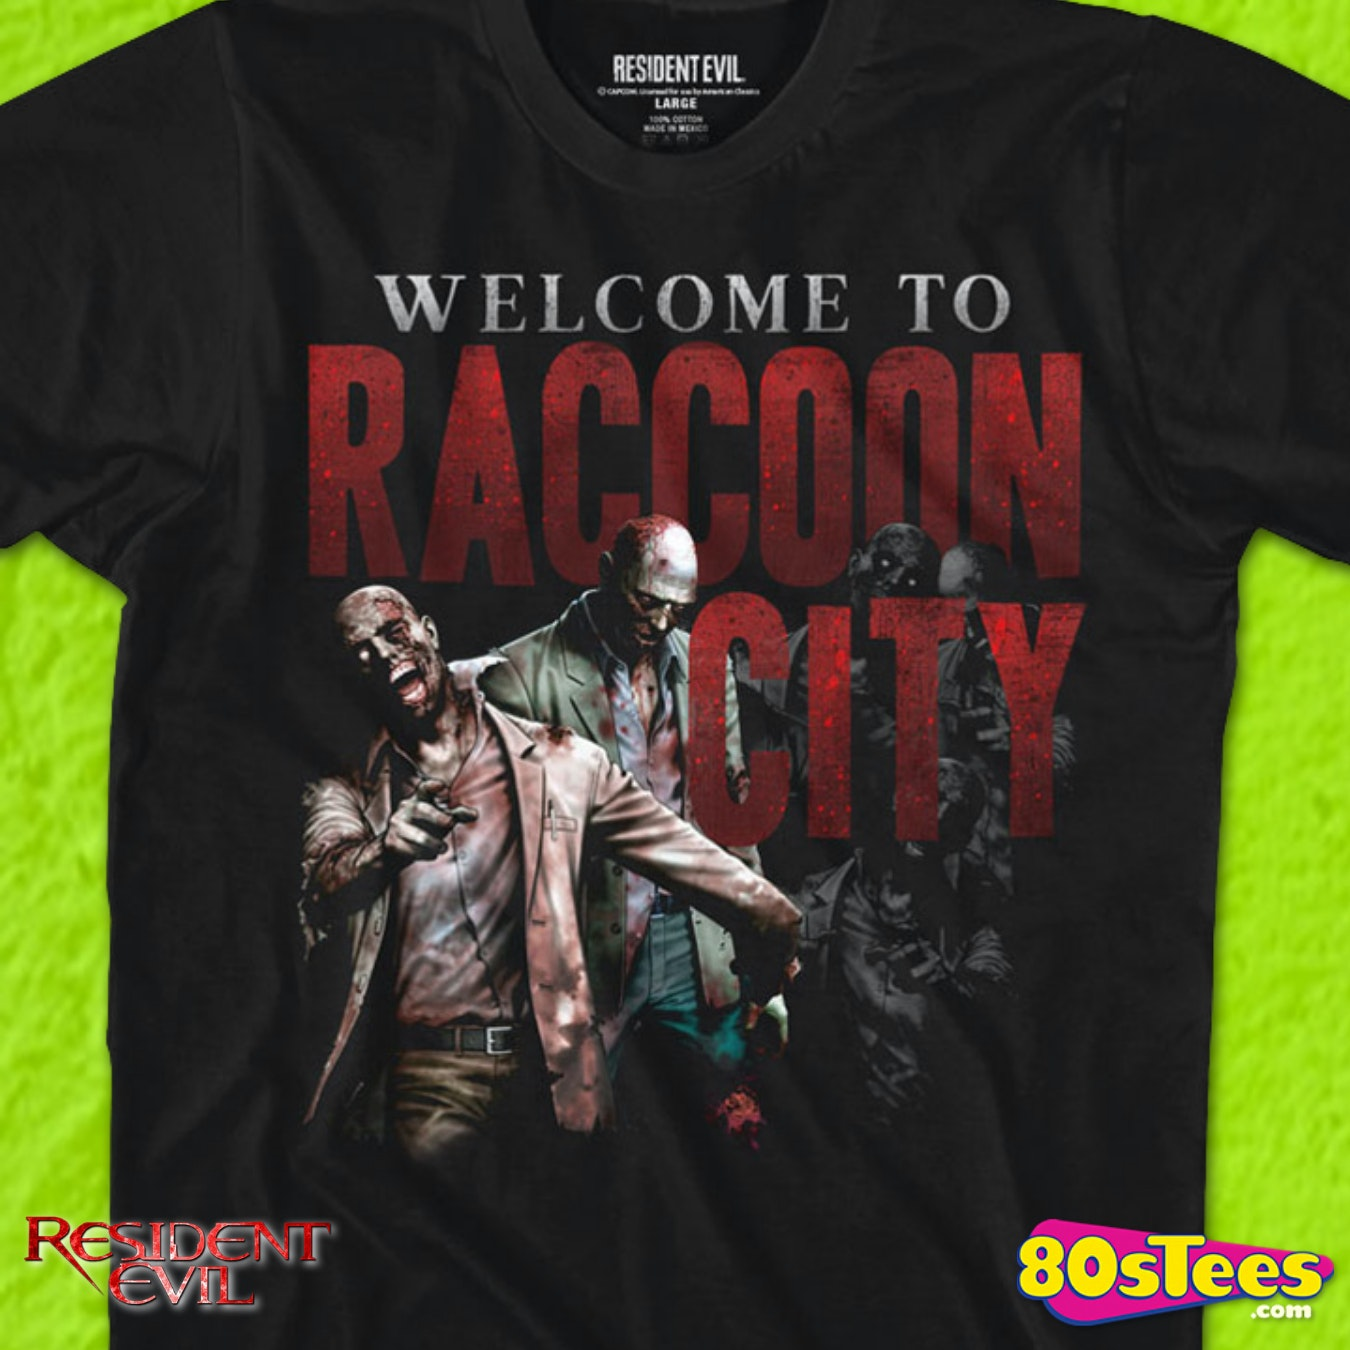 Vintage Shirt for STARS or Raccoon City PD Cosplay Resident Evil S.T.A.R.S